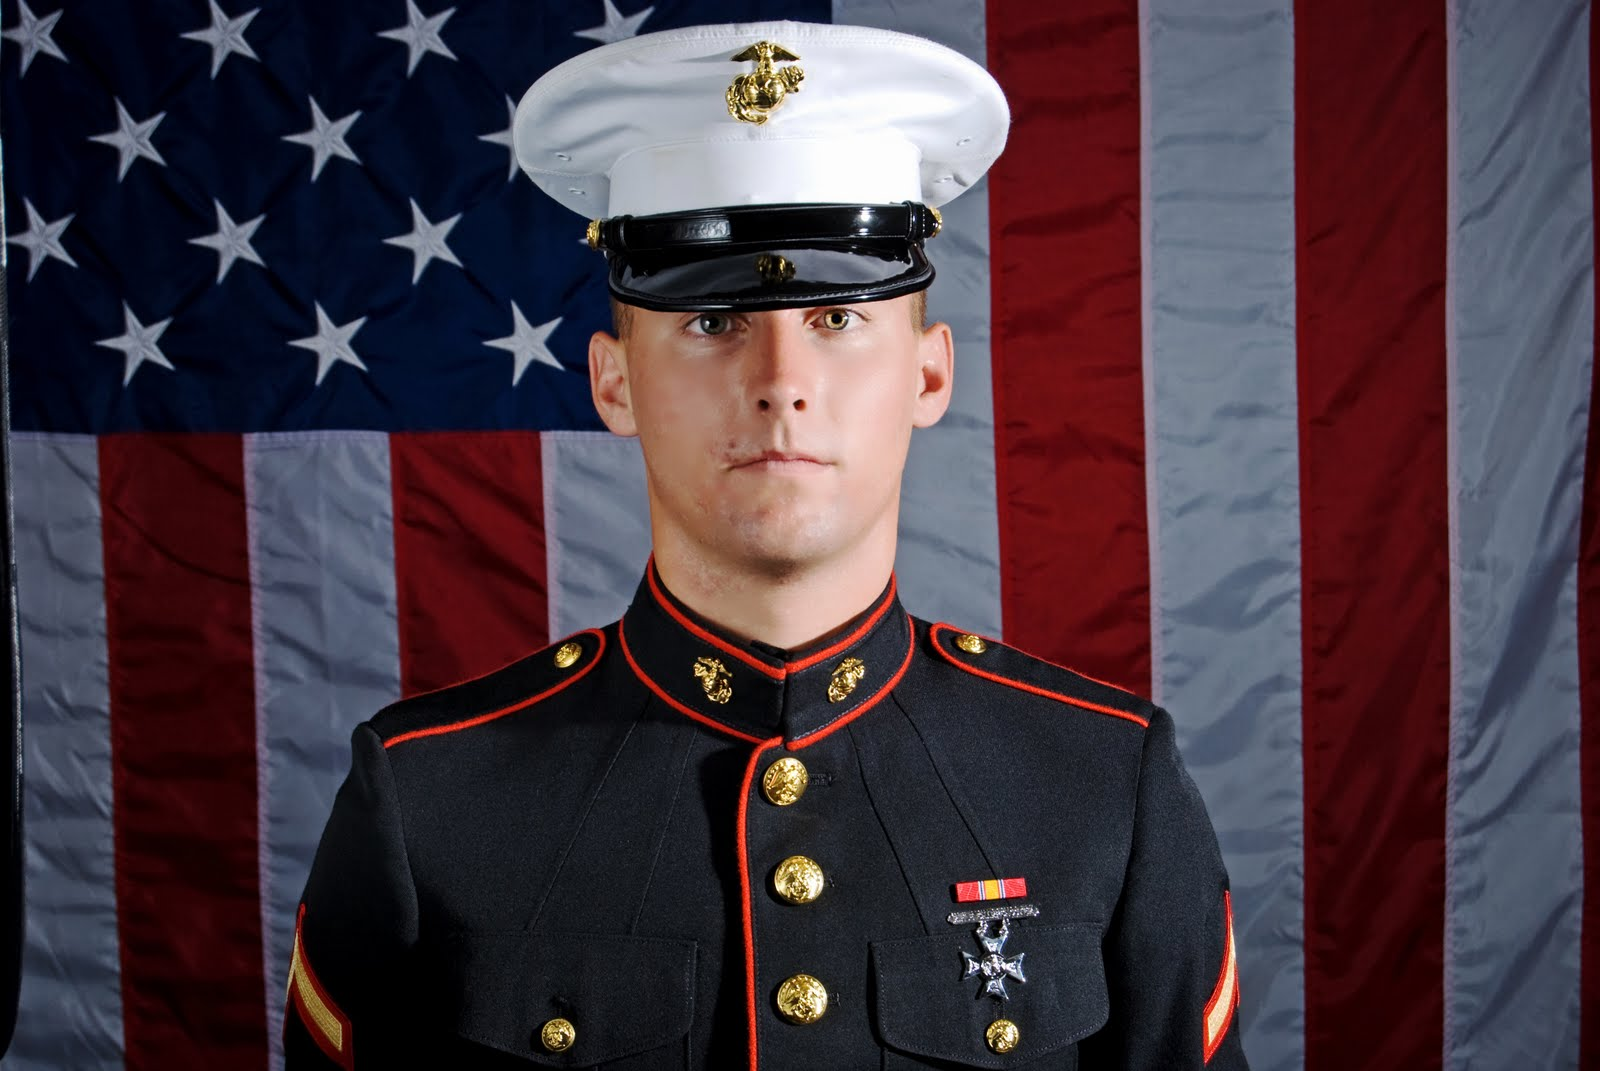 Marine pictures in dress blues